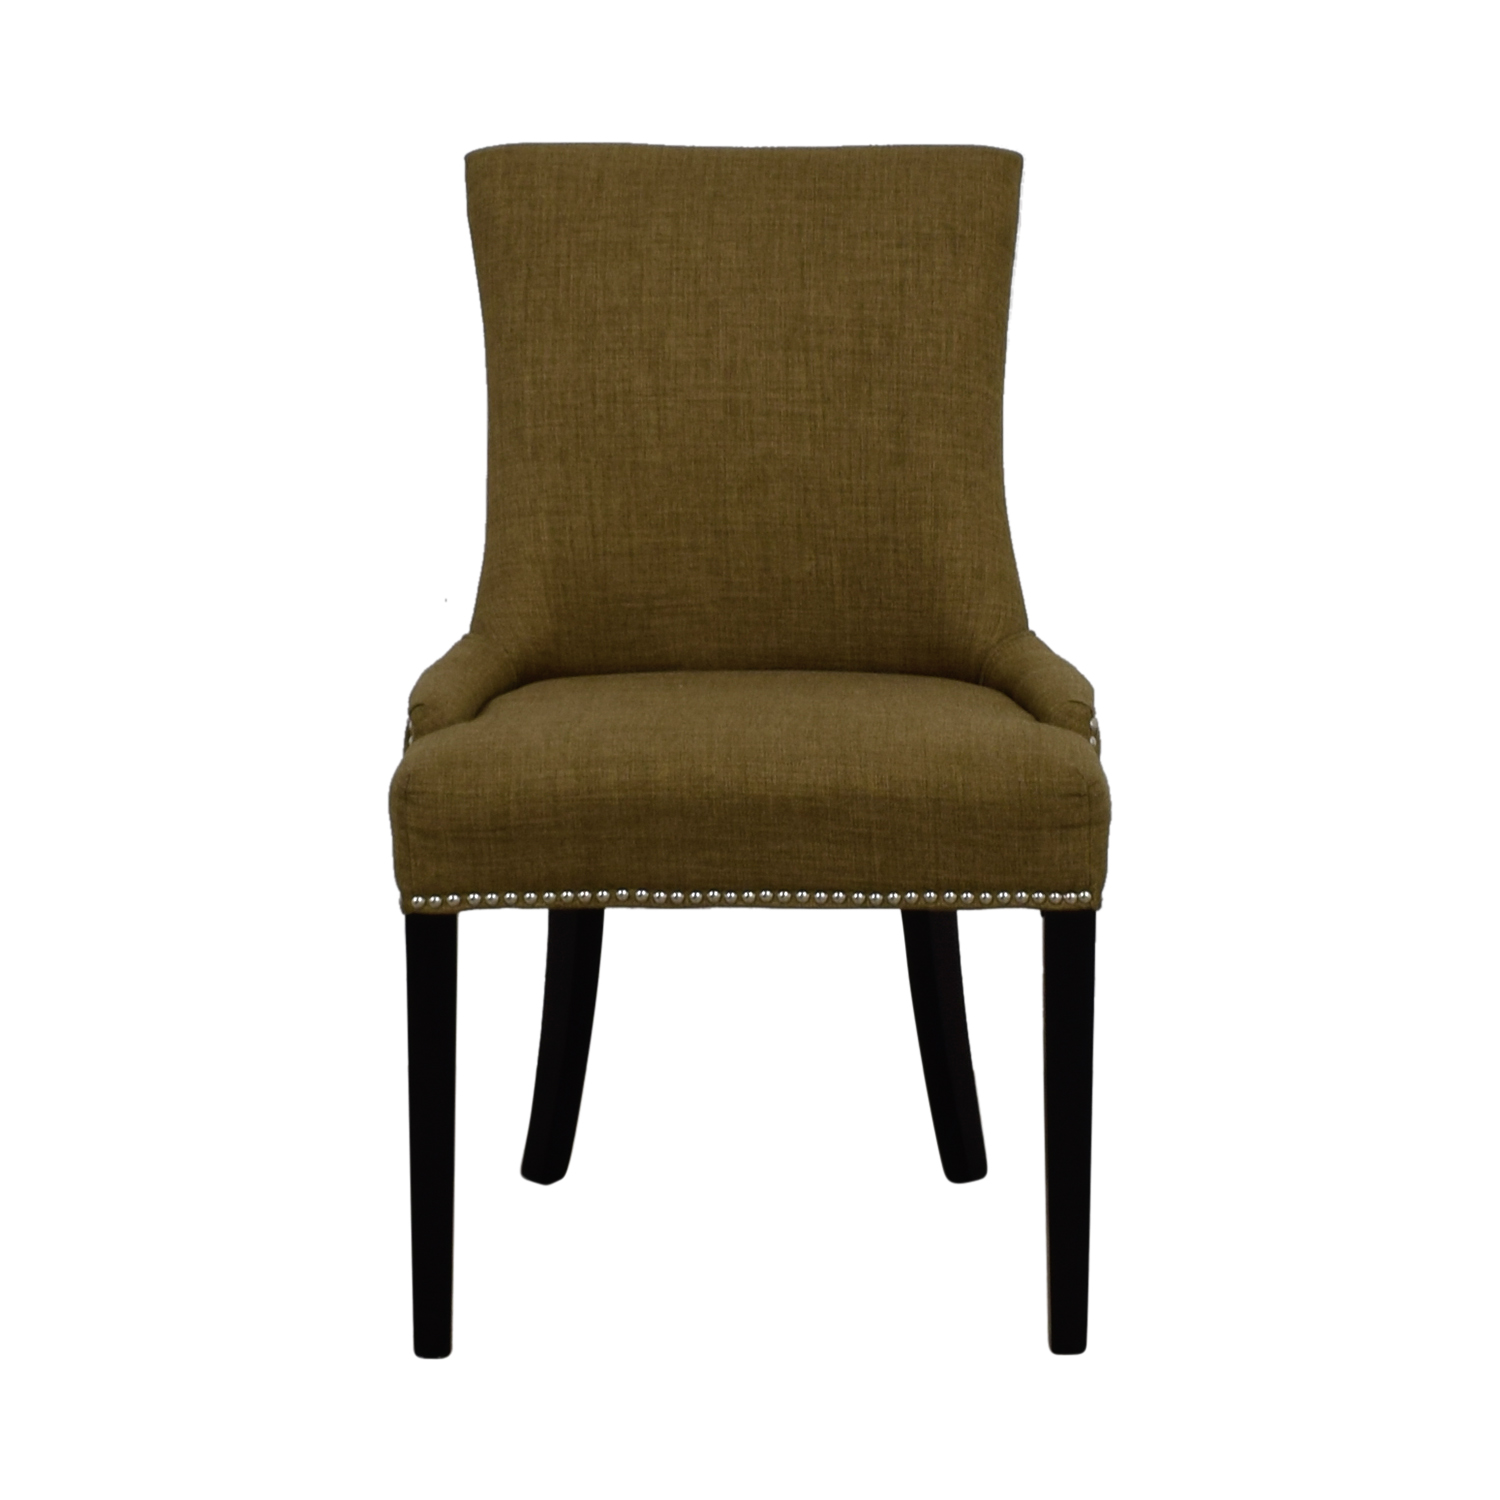 Abbyson Newport Tan Fabric Nailhead Dining Chair Abbyson Newport